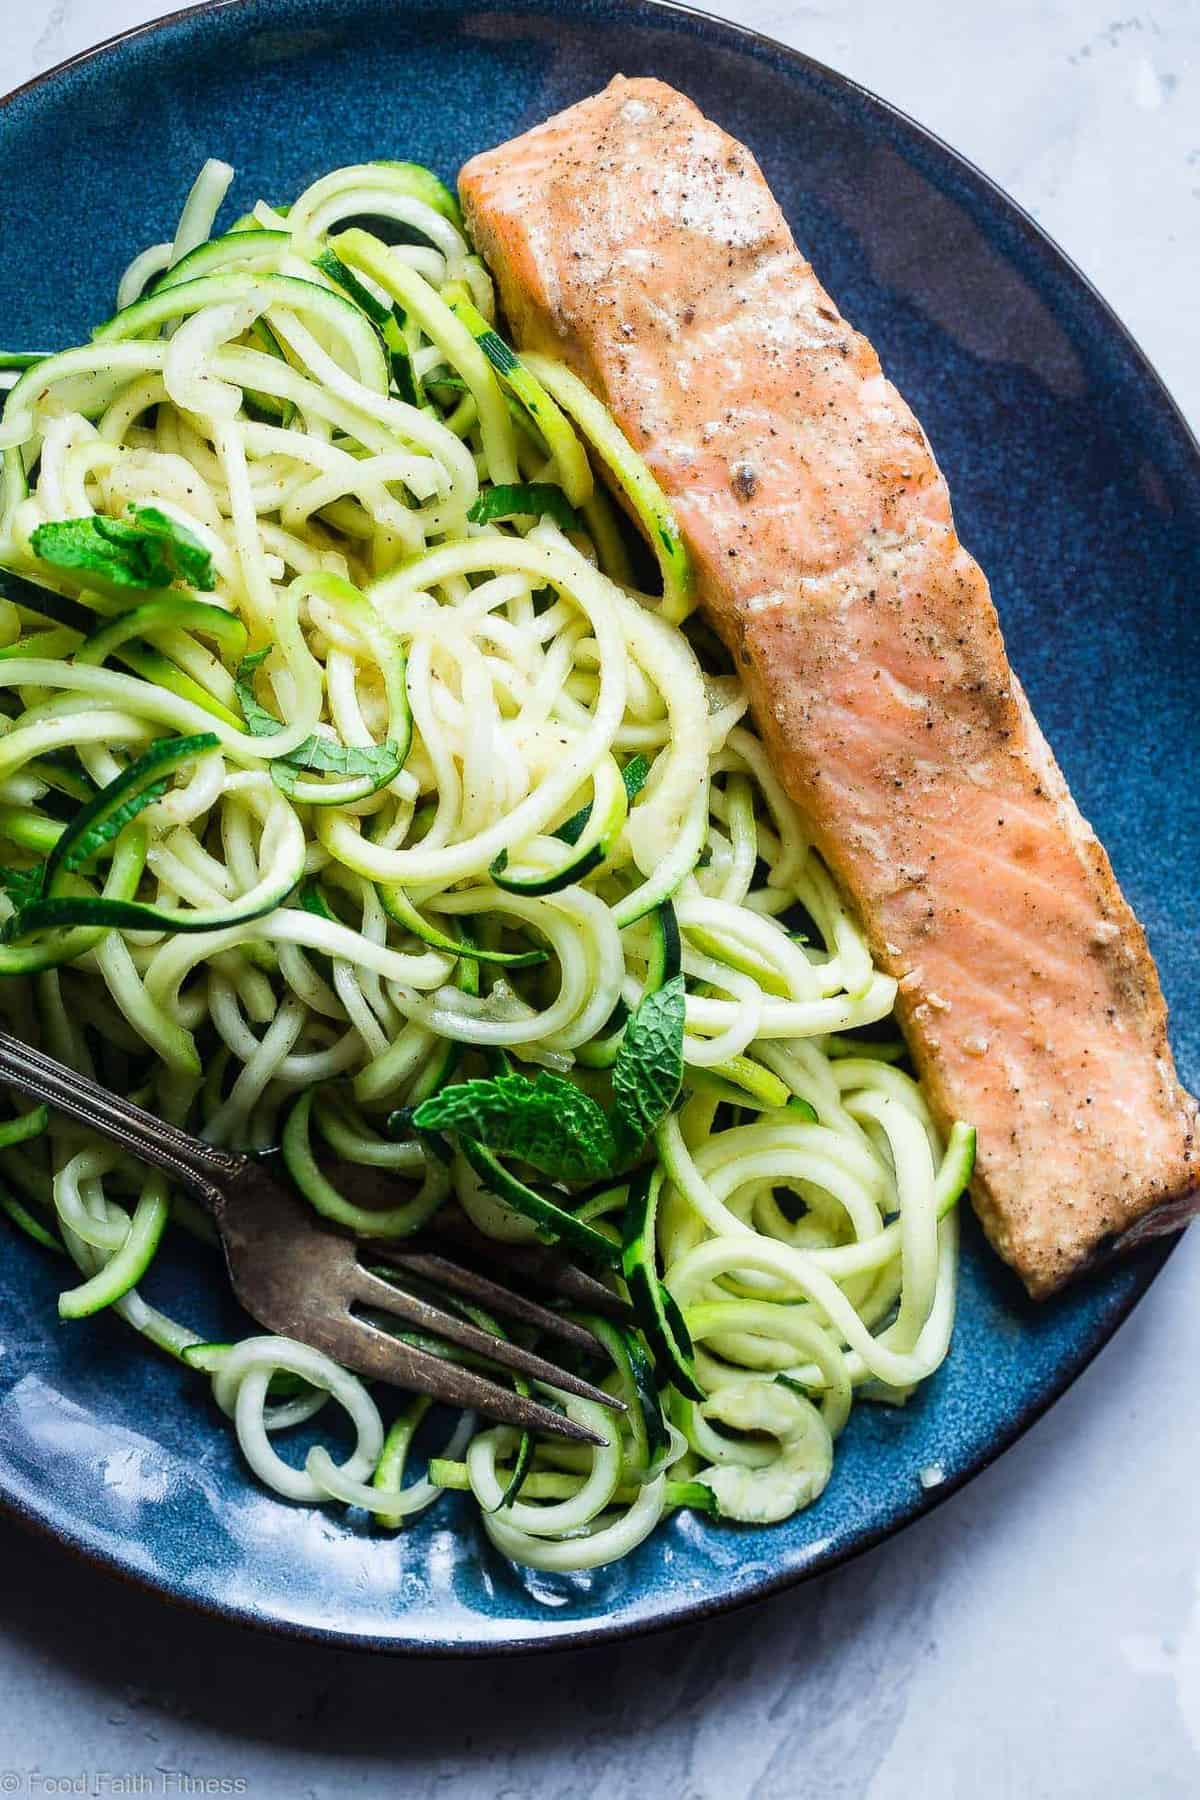 Whole30 Salmon Curry Zucchini Noodles - ASUPER easy, 5-ingredient, healthy meal that is paleo, gluten free, low carb and whole30 compliant! Perfect for busy weeknights! | #Foodfaithfitness | #Paleo #Lowcarb #Whole30 #Healthy #Keto